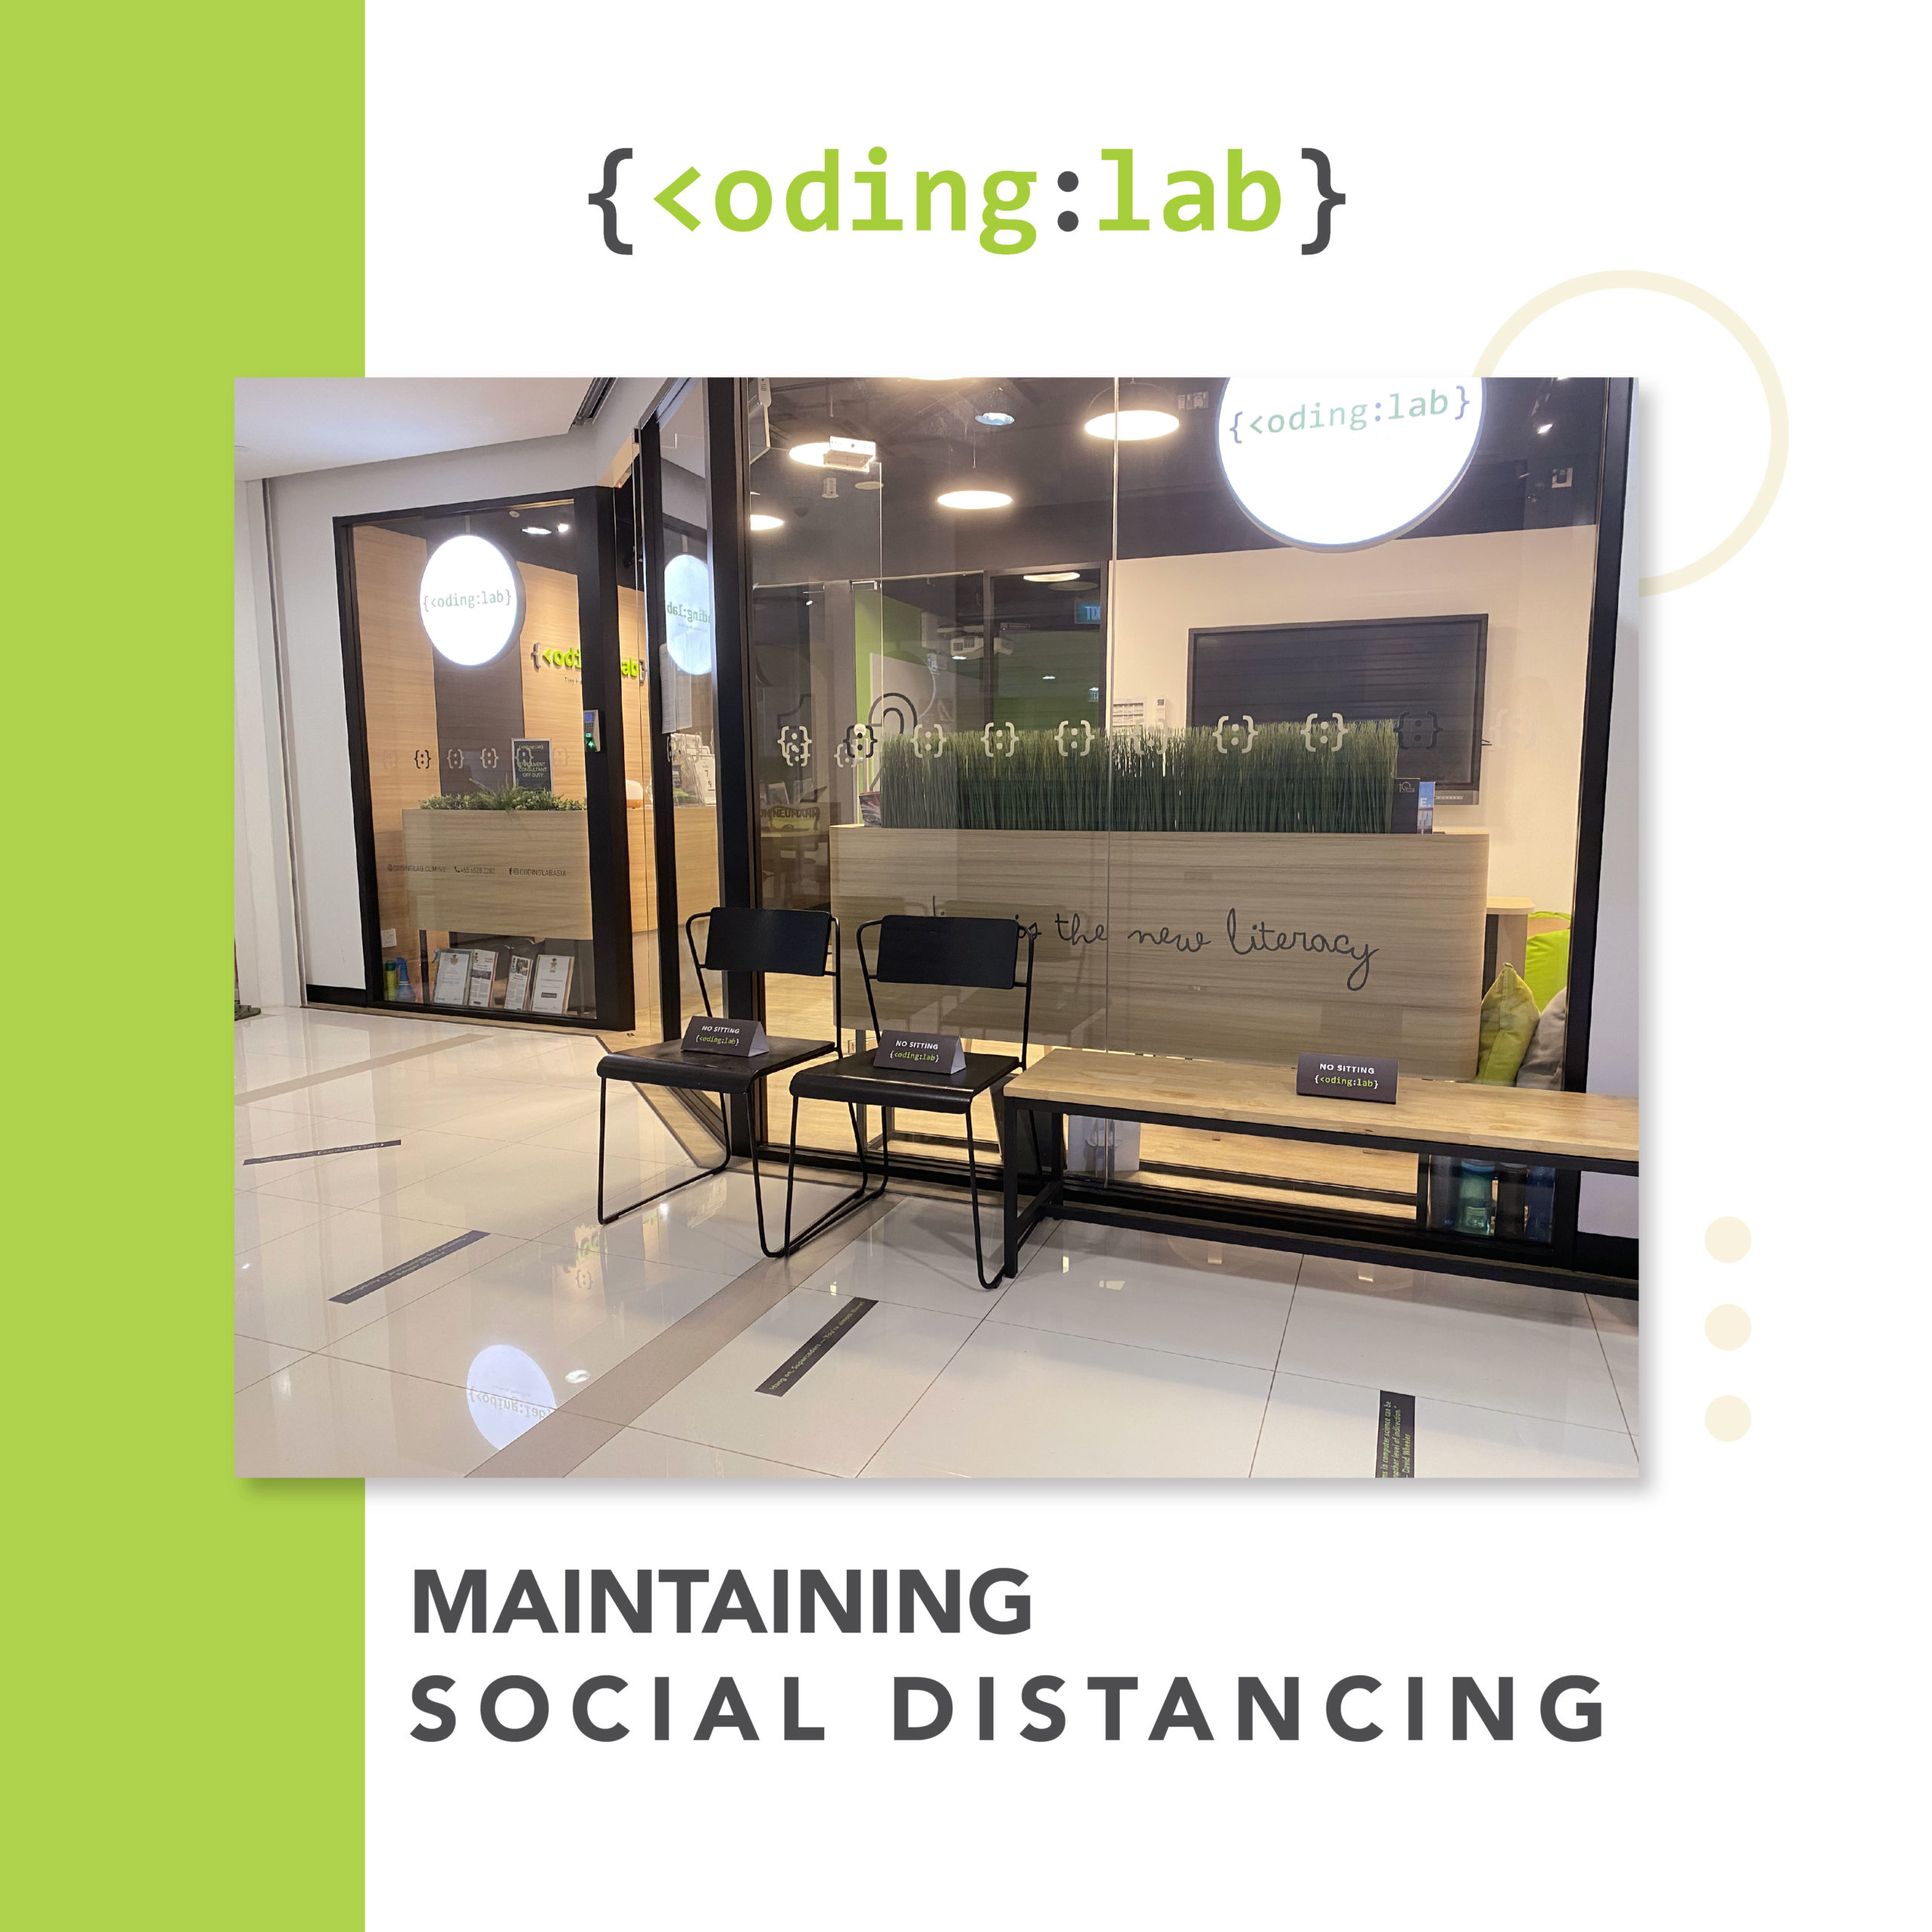 Maintaining social distancing